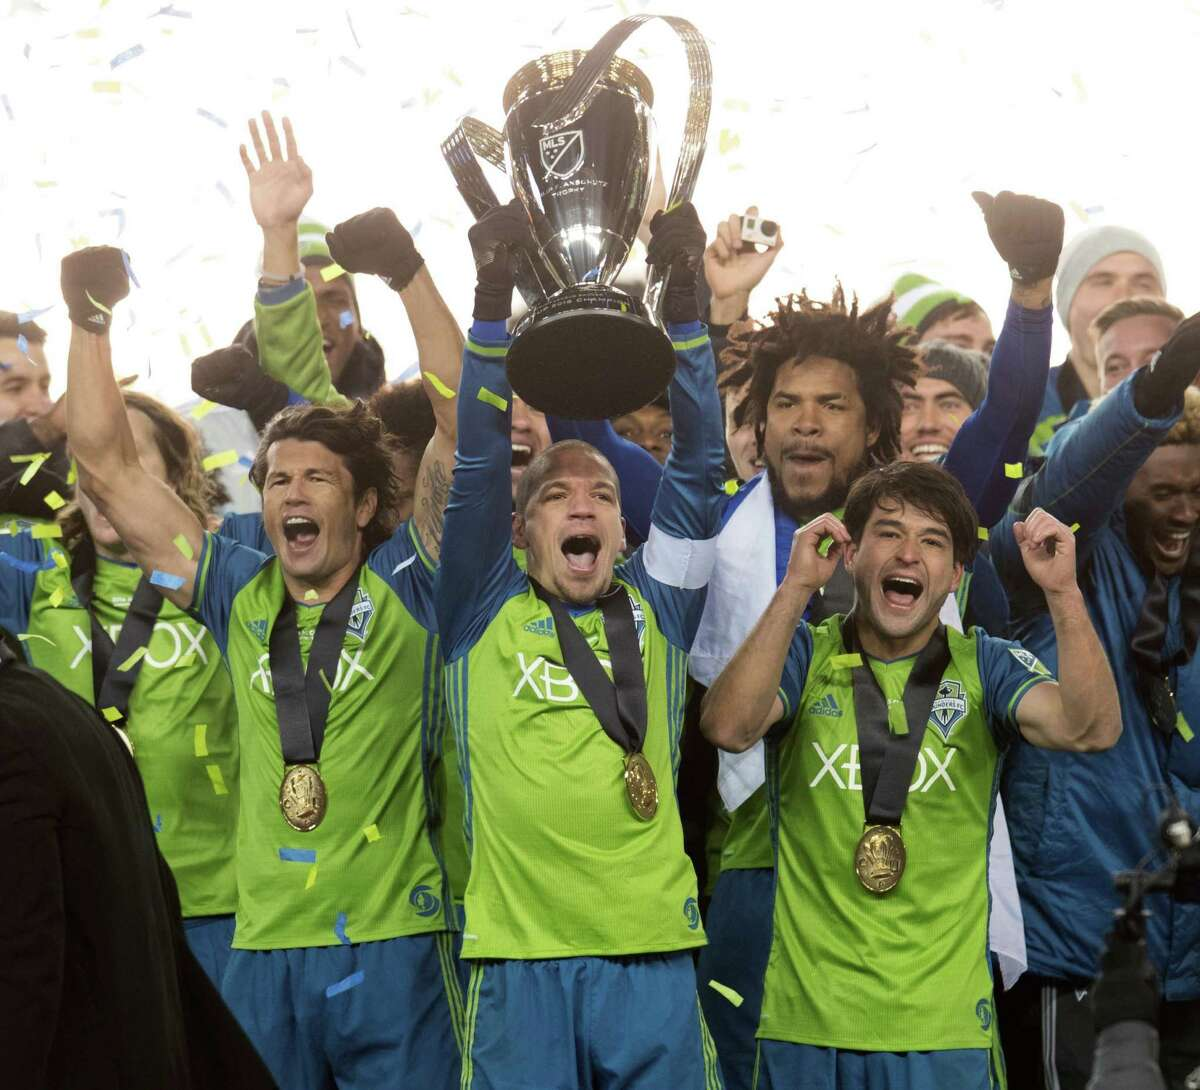 Seattle Sounders players celebrate after winning the MLS Cup soccer final against Toronto FC in Toronto, Saturday, Dec. 10, 2016. (Nathan Denette/The Canadian Press via AP)